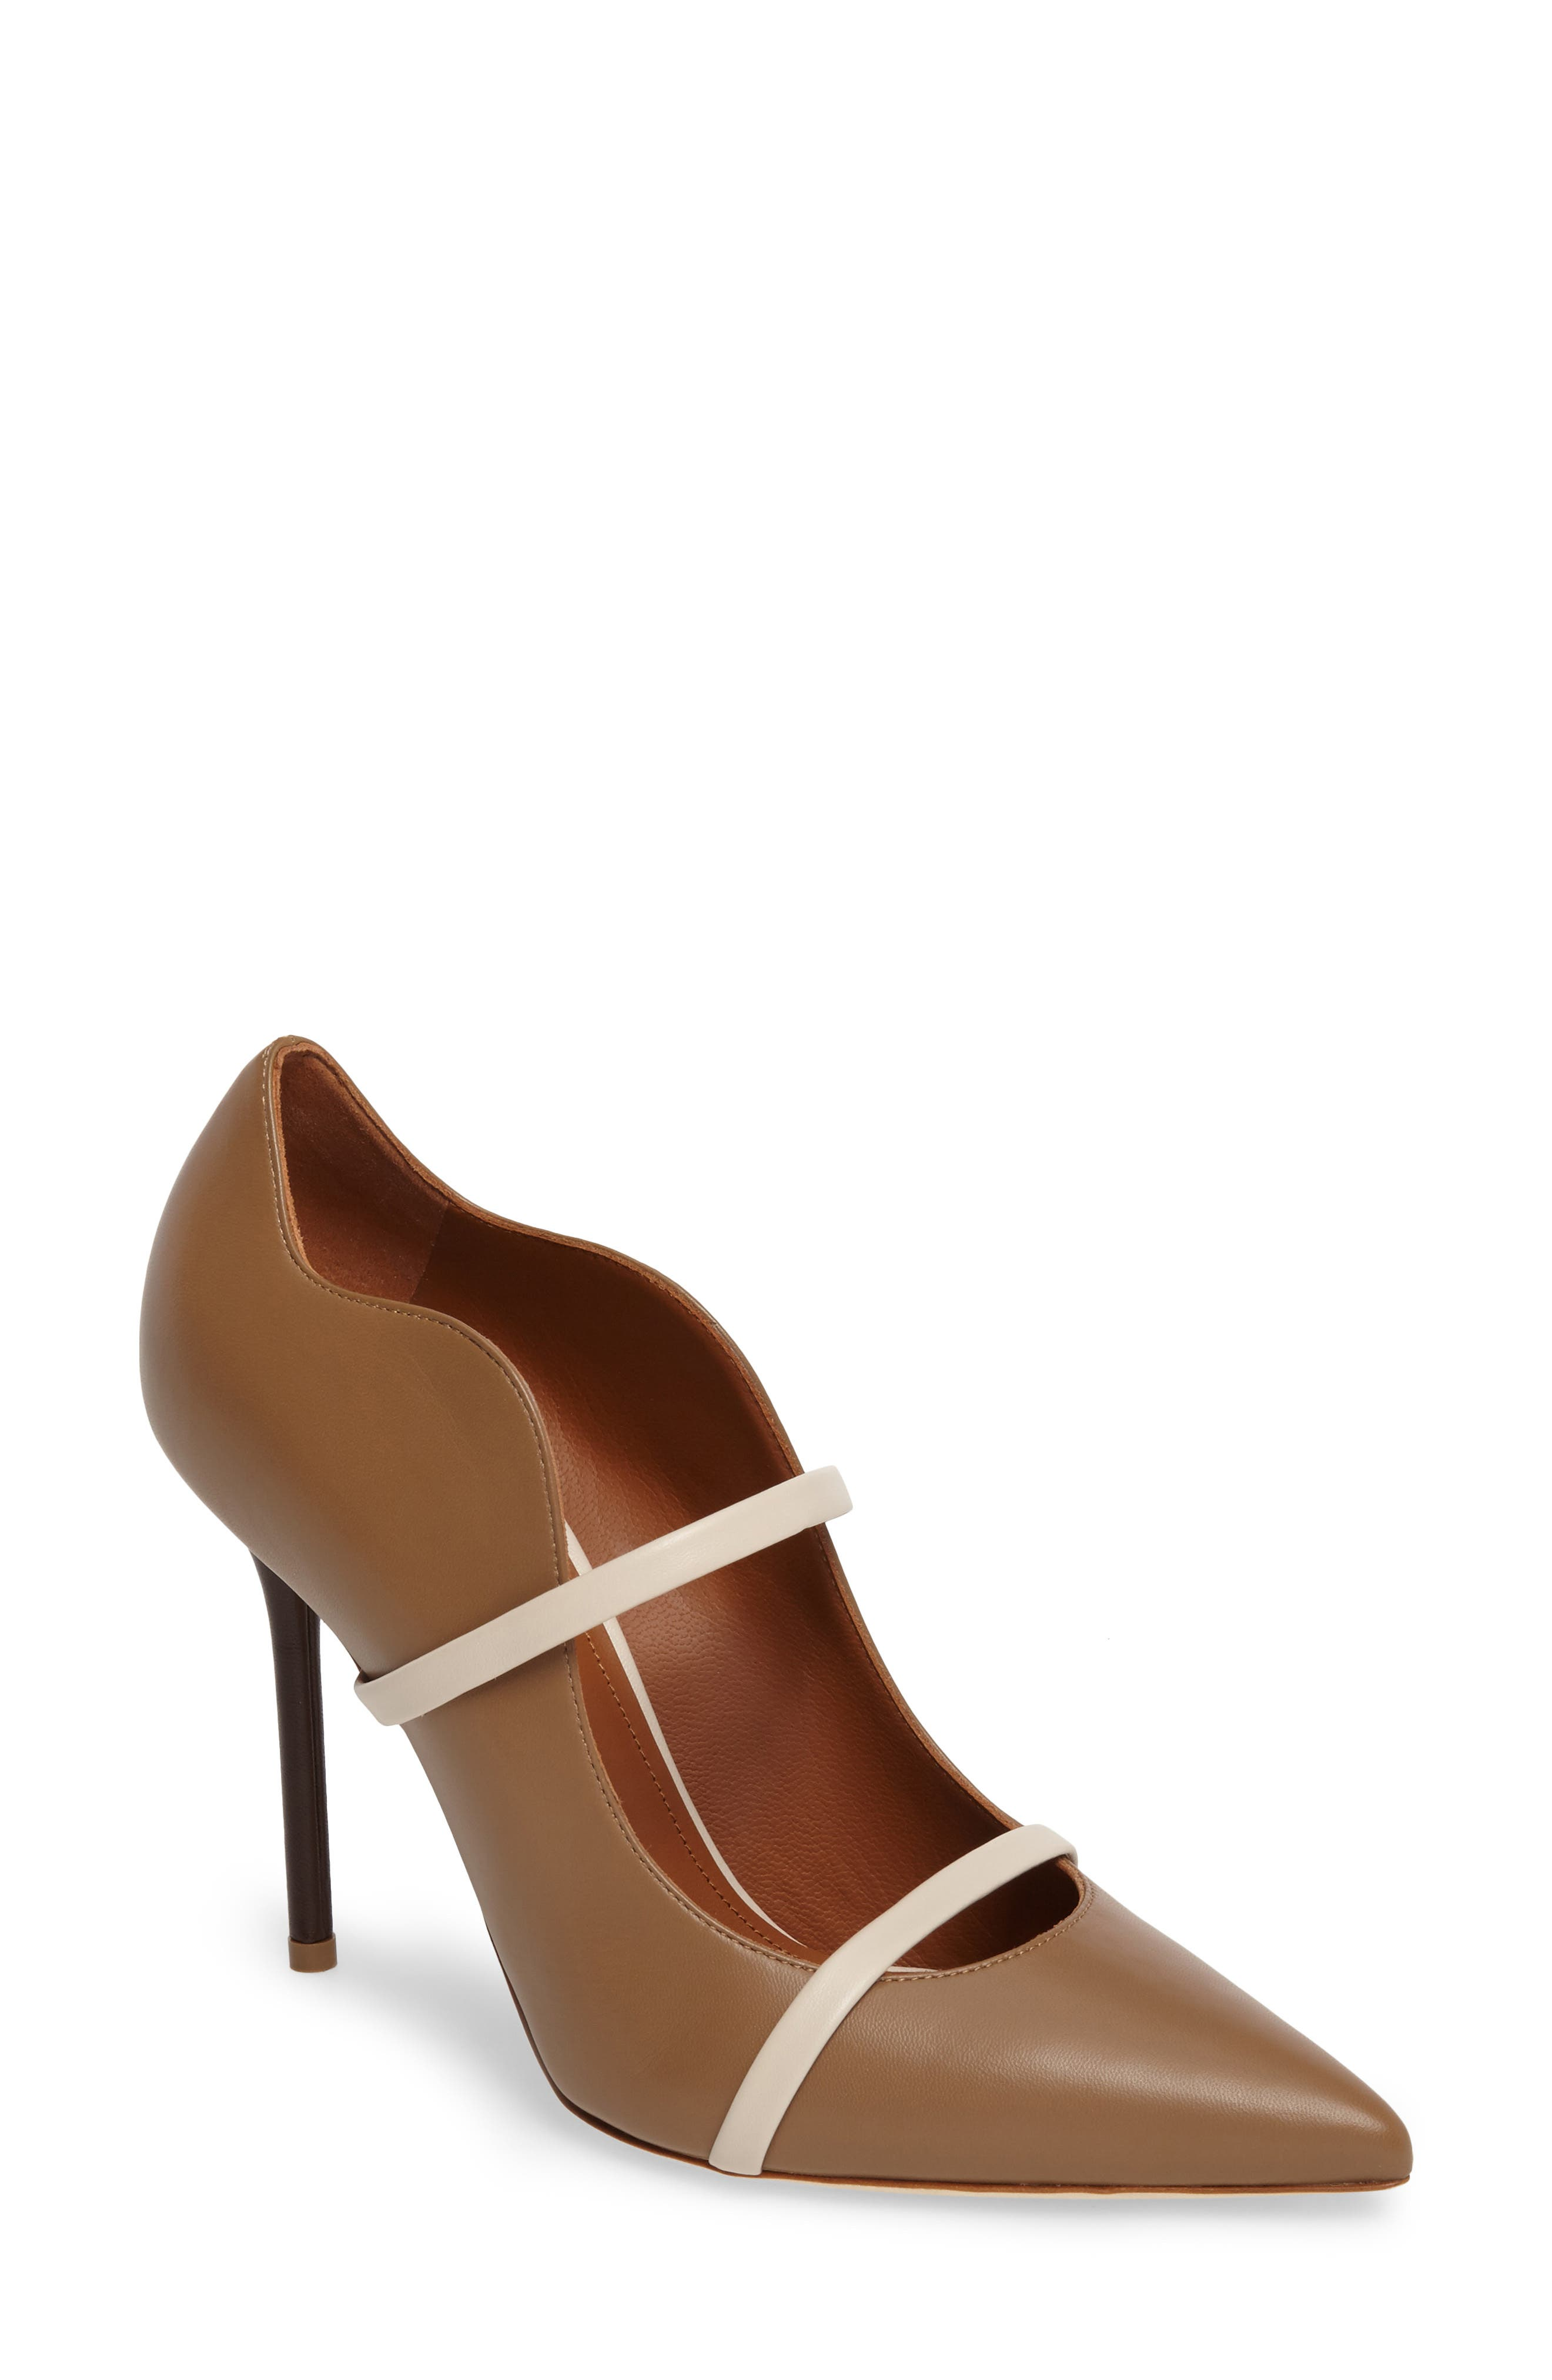 Maureen Double Band Pump,                         Main,                         color, Chocolate/ White Leather